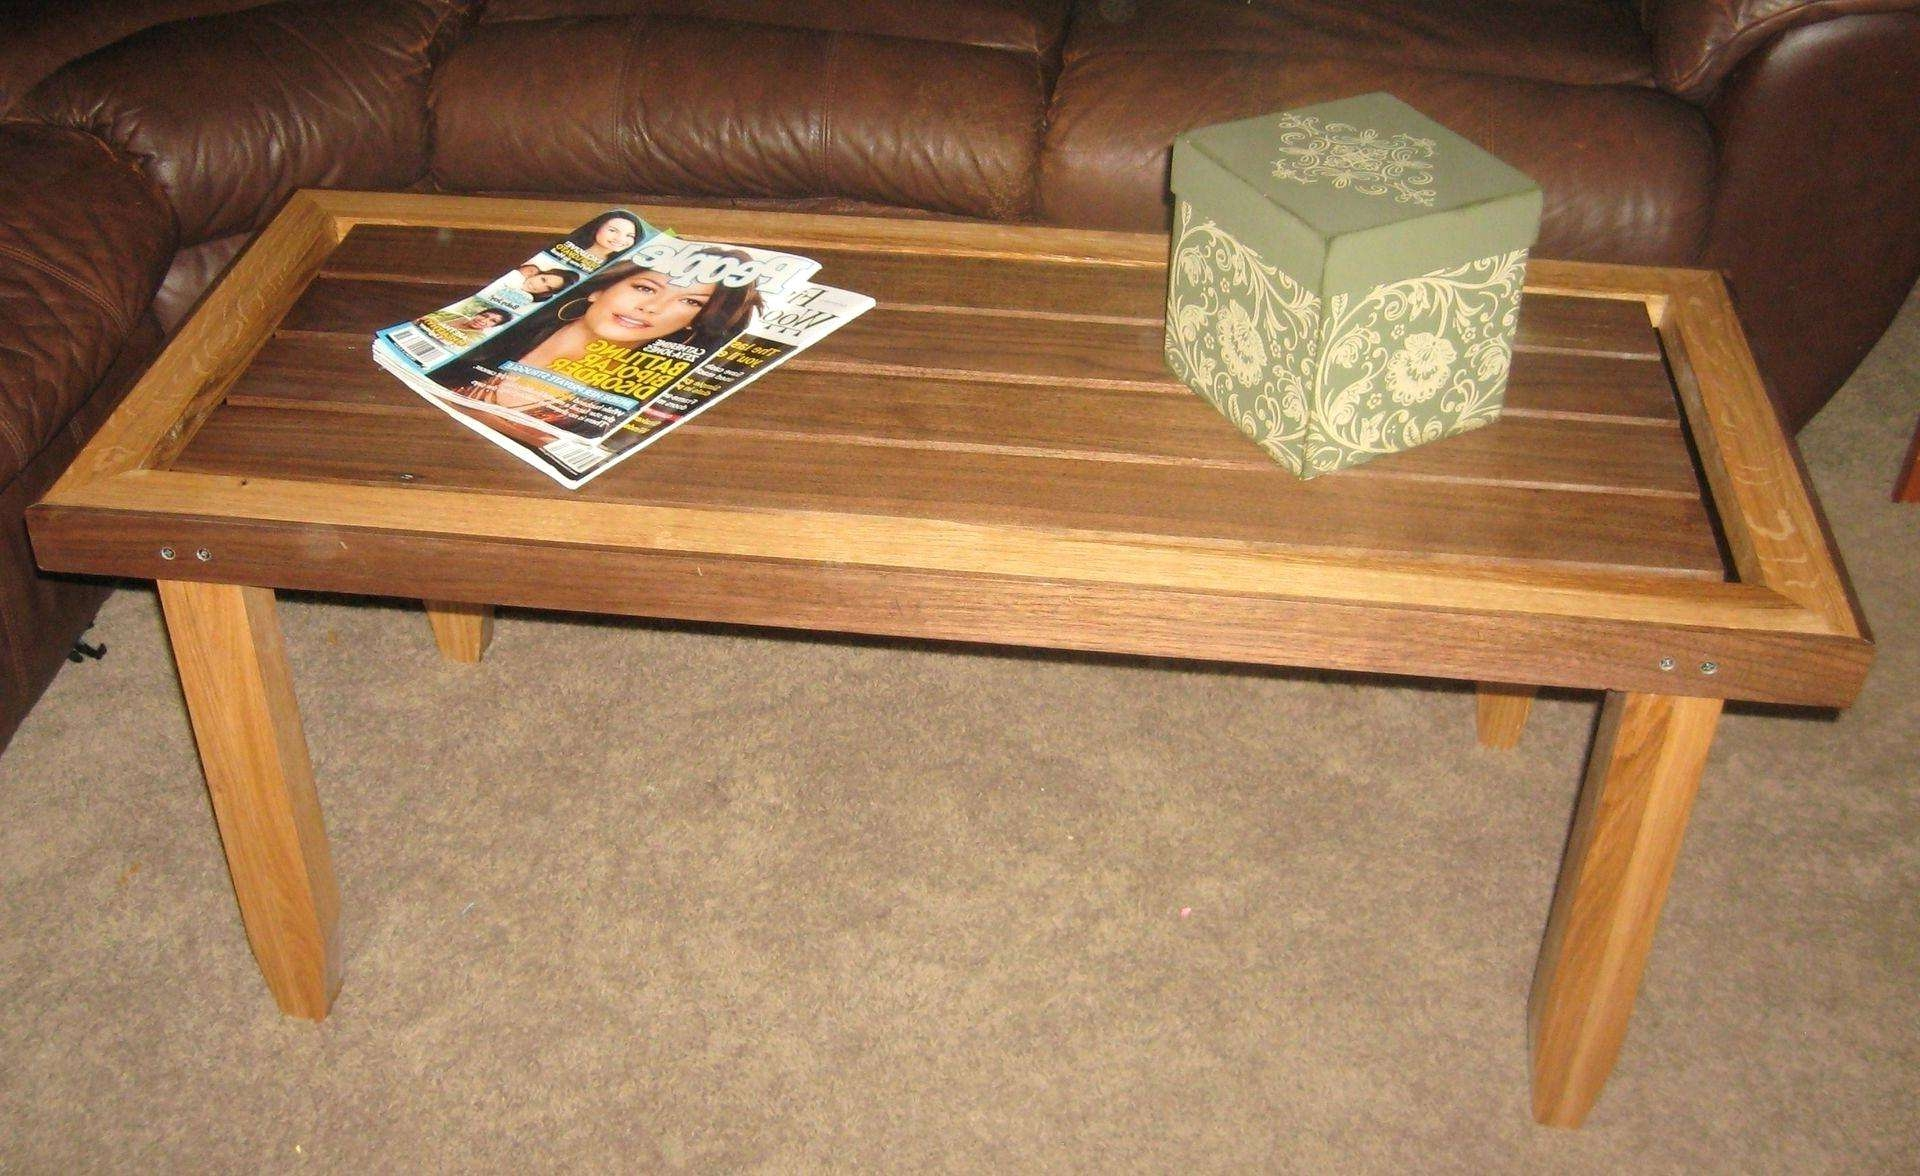 Coffee Tables : Floating Glass Top Coffee Table Balloon With Best And Newest Floating Glass Coffee Tables (View 8 of 20)